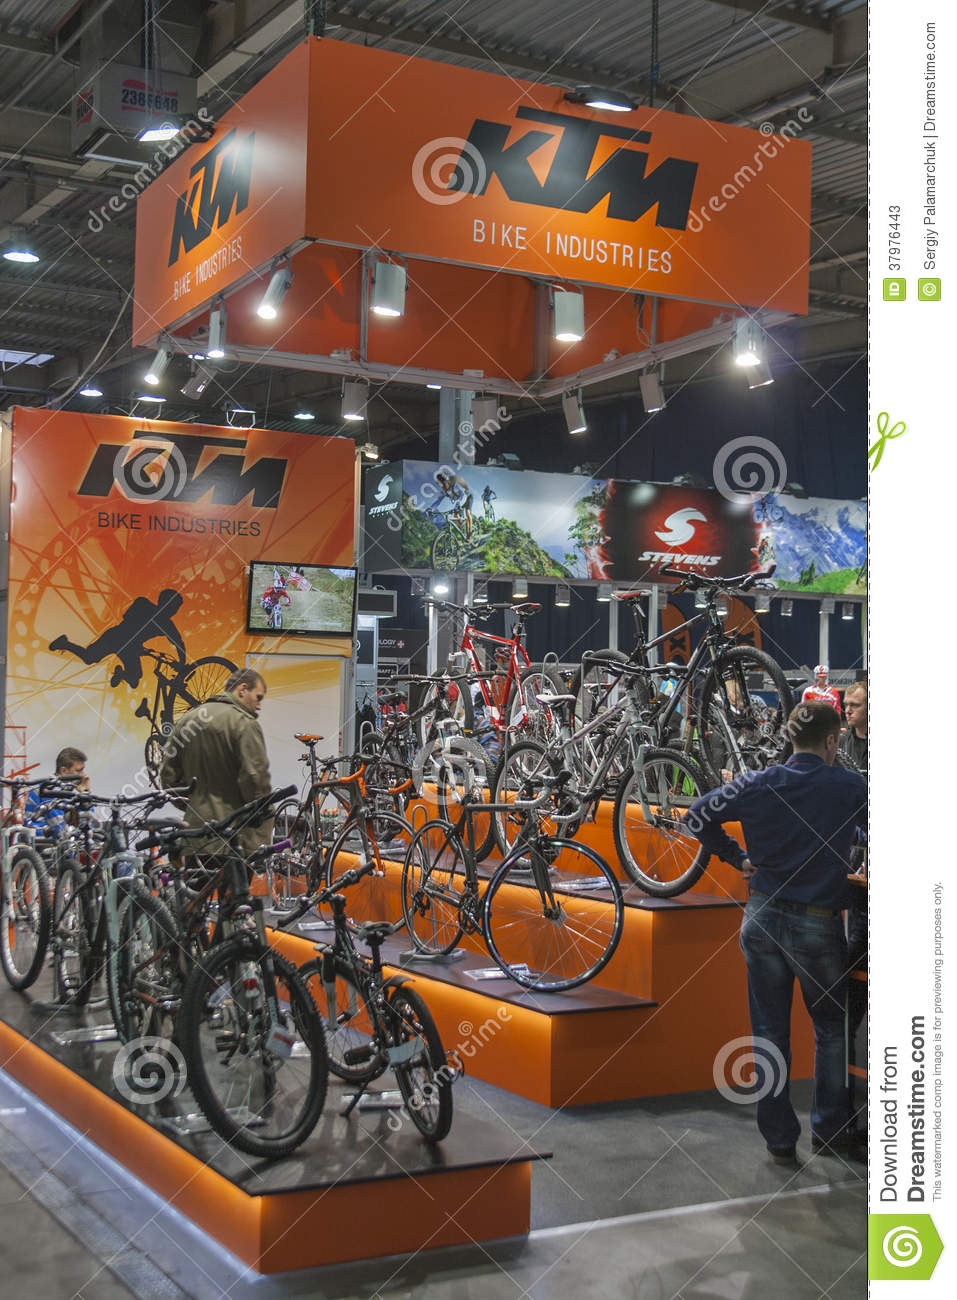 Trade Show Booth Visitors : Ktm booth at bike trade show editorial stock photo image